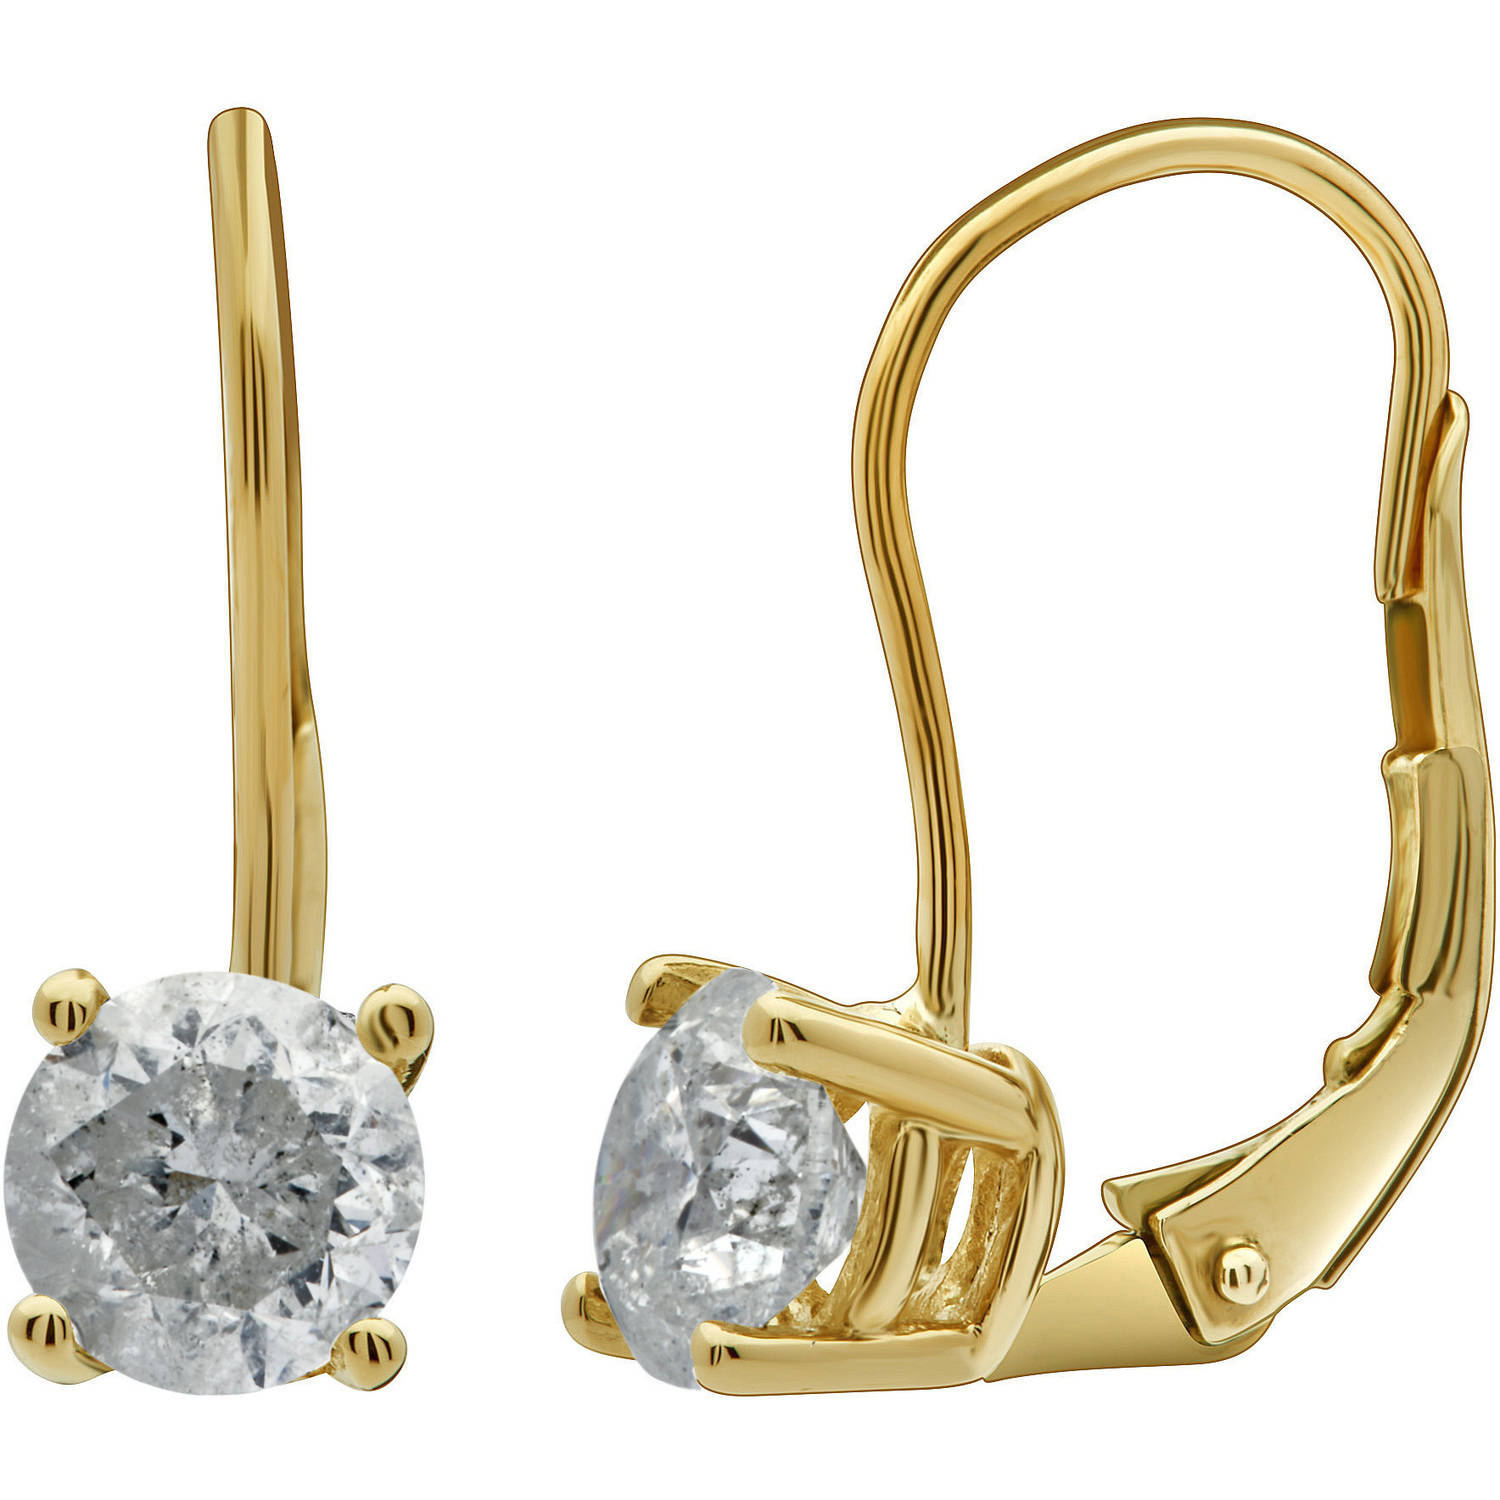 1-1/2 Carat T.W. Round Diamond 14kt Yellow Gold Leverback Stud Earrings with Gift Box, IGL Certified